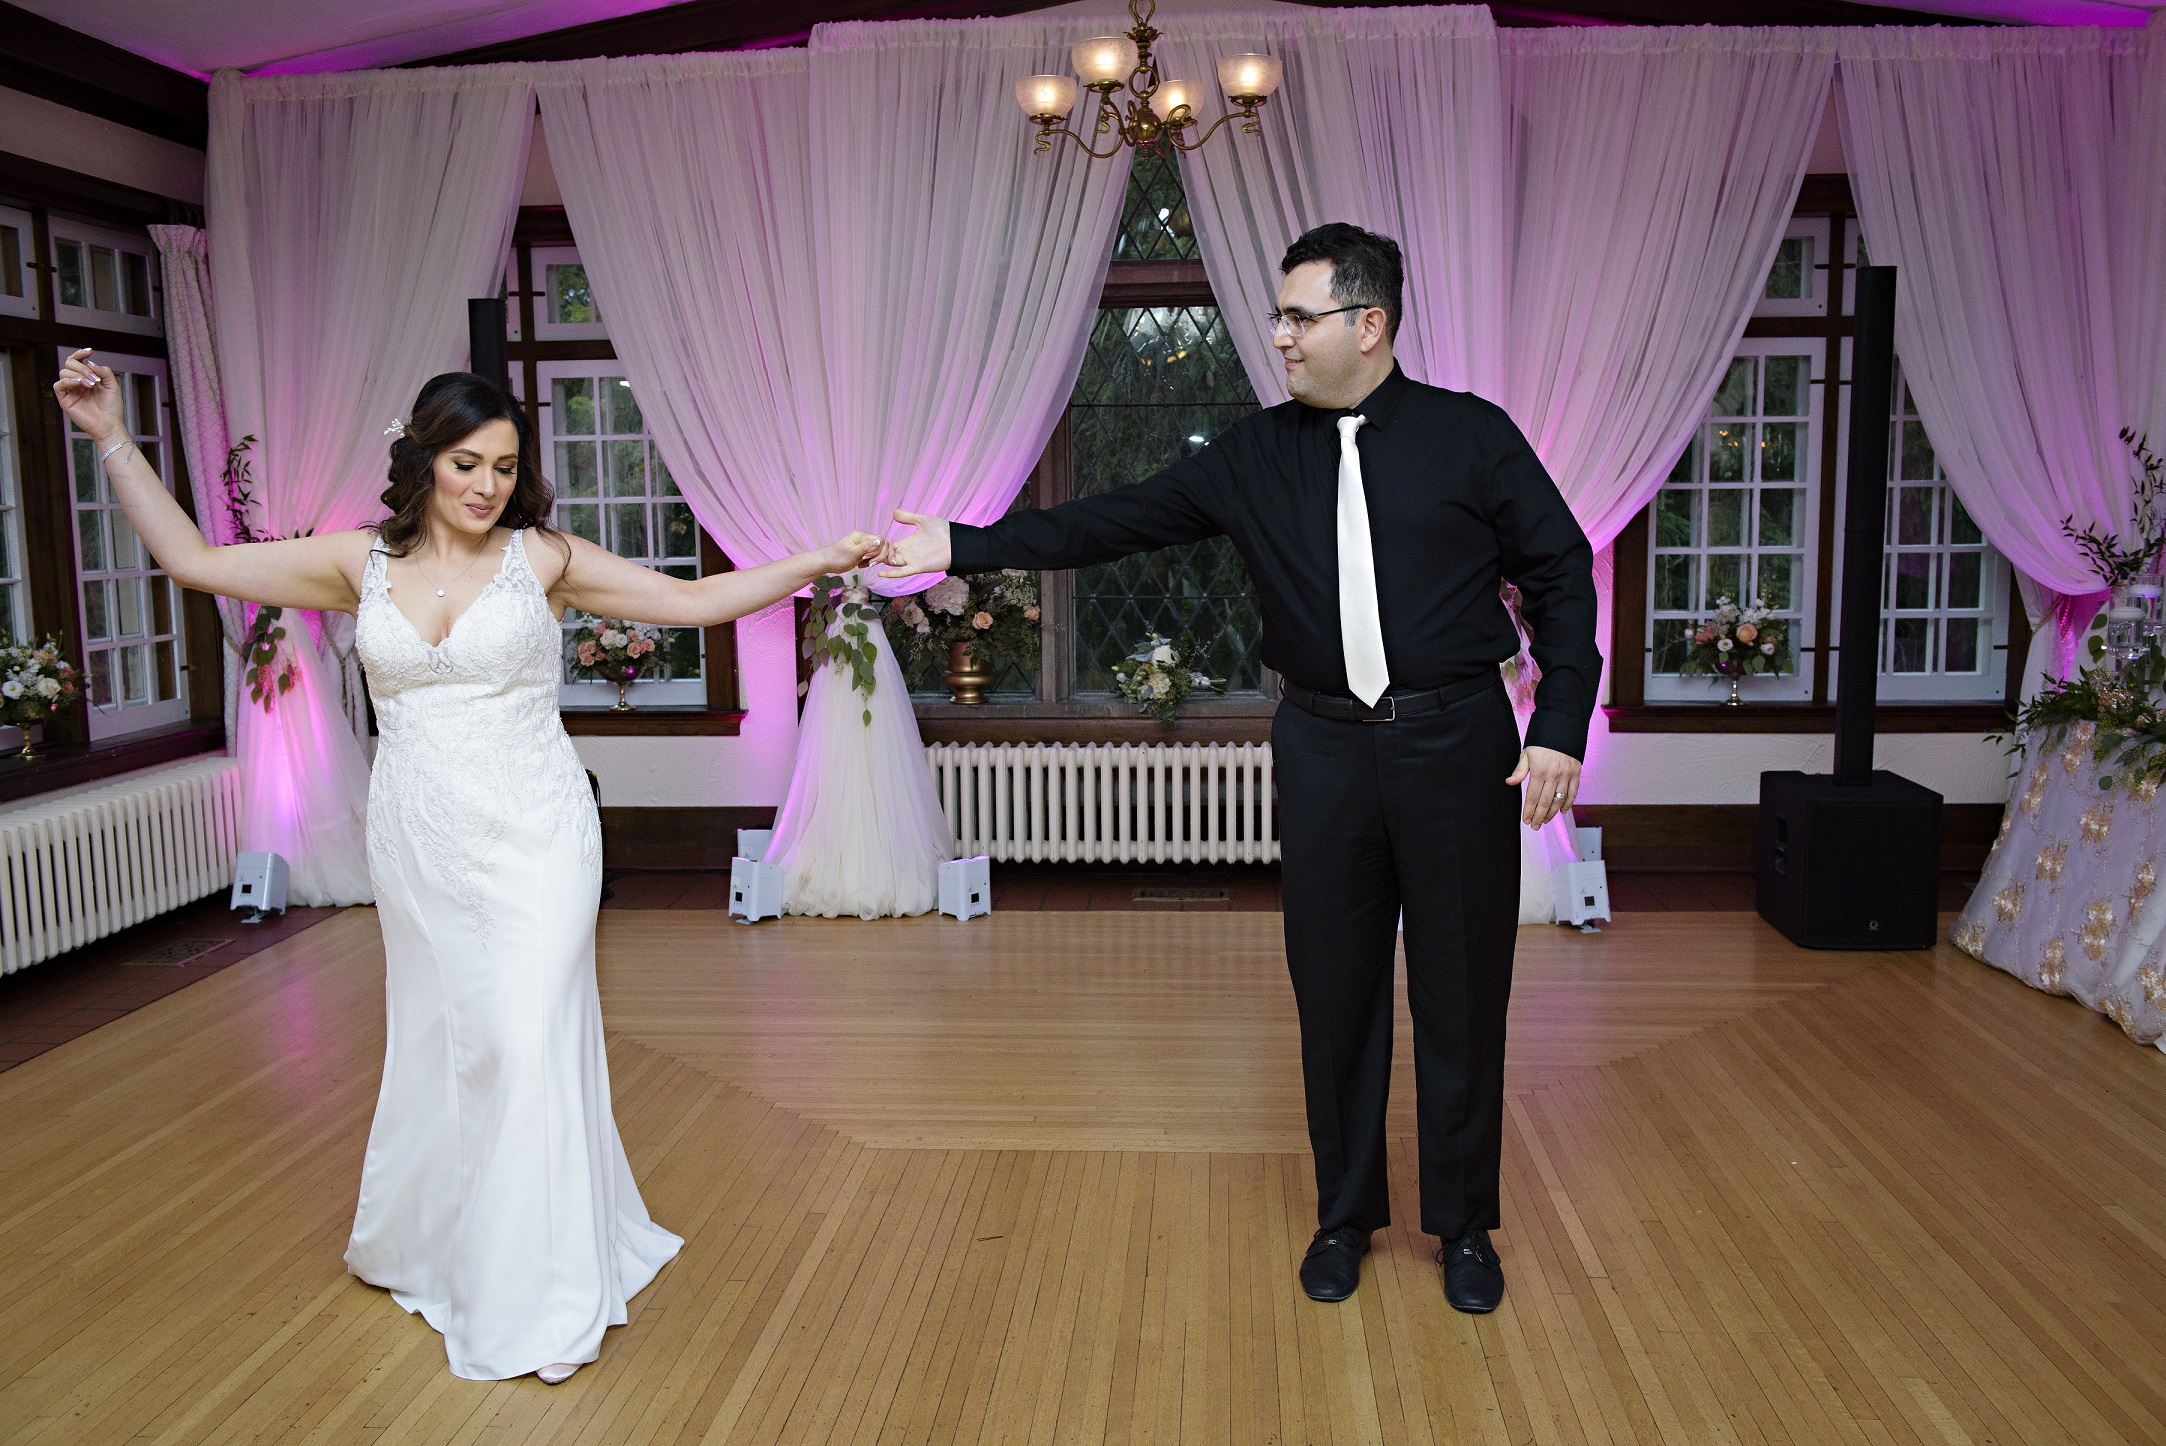 Extra Wedding Planning Time Unmistakably You HRM Photography choreographed first wedding dance